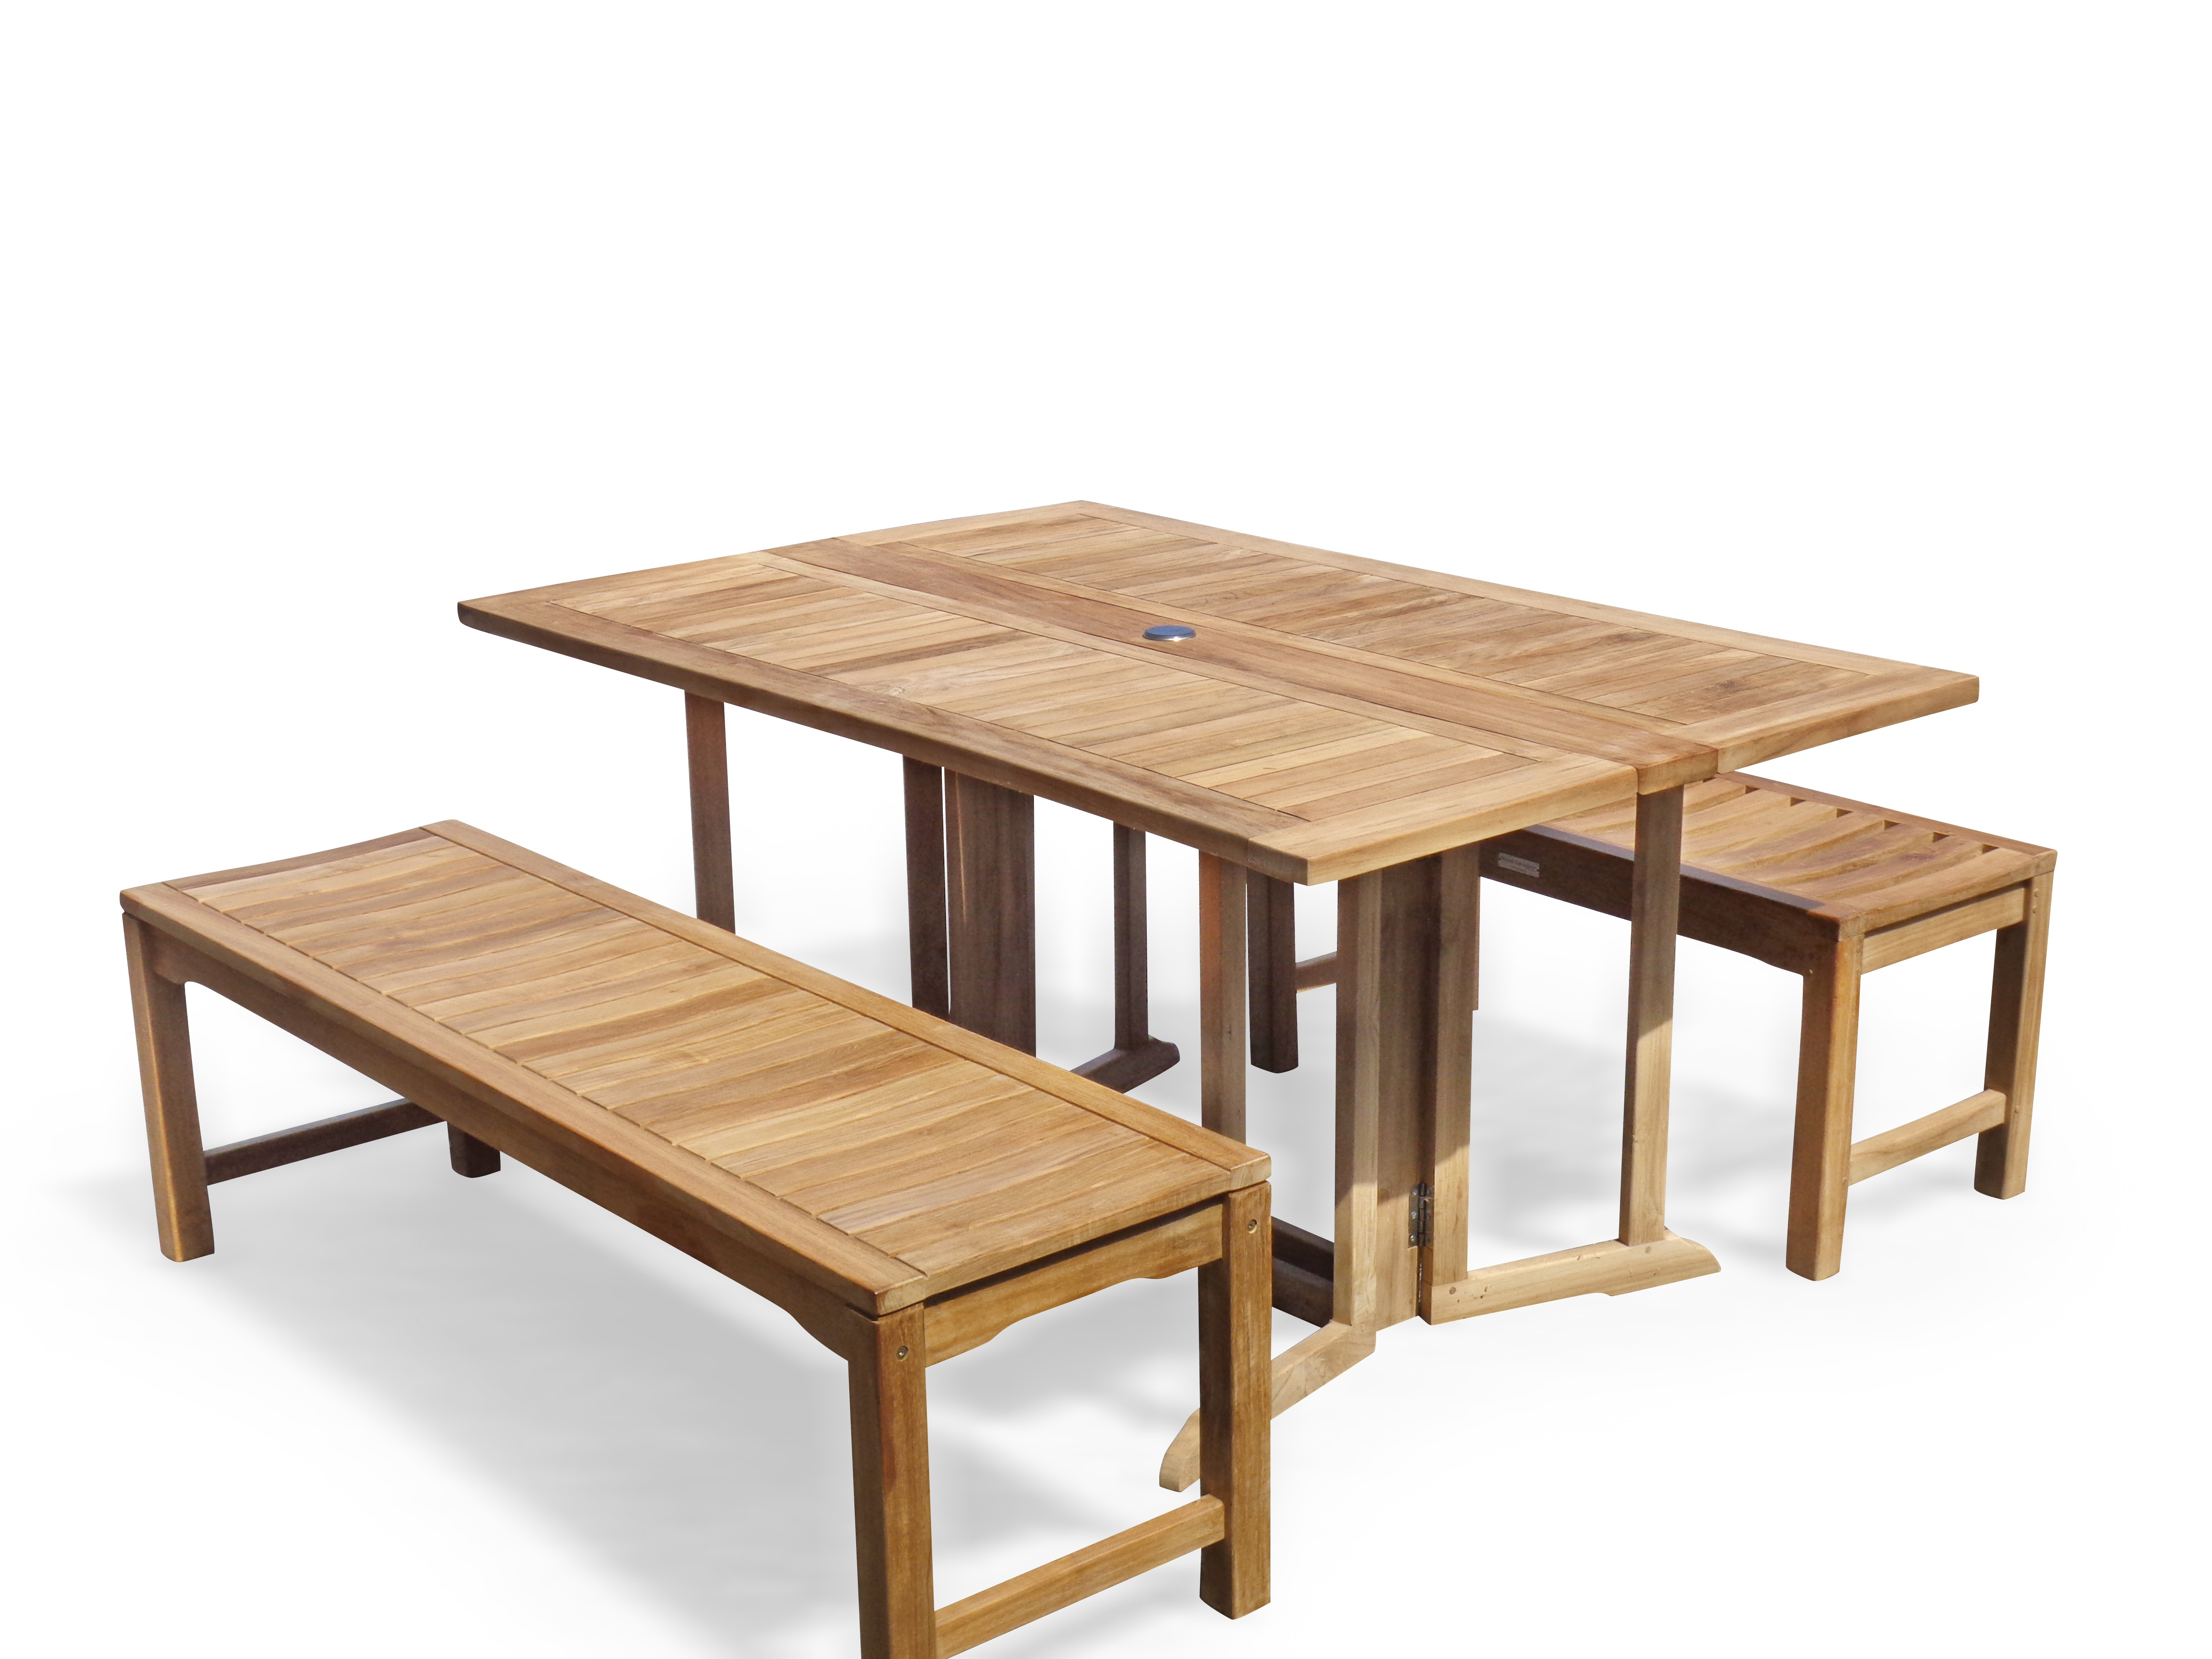 """Barcelona 59"""" x 39"""" Rectangular Drop Leaf Teak Table W/two 59"""" Backless Benches...Seats 6 Adults"""